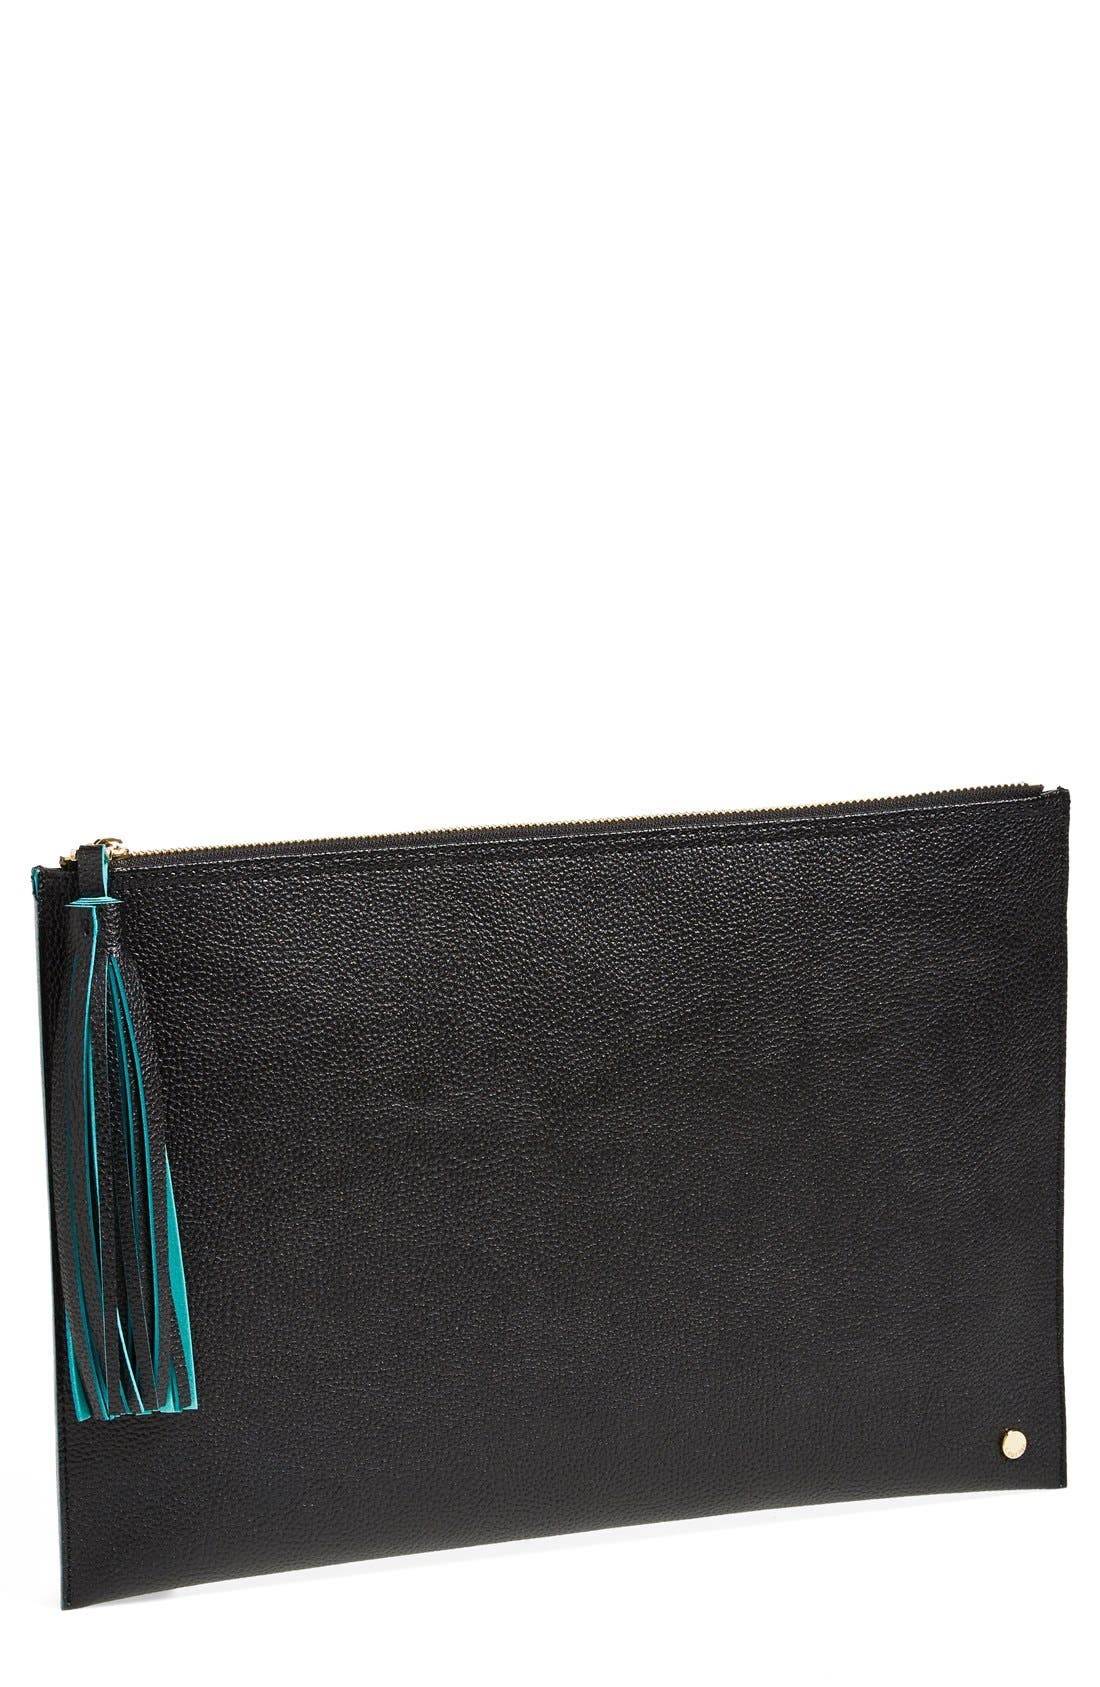 DEUX LUX 'Elle' Zip Top Pouch, Main, color, 001